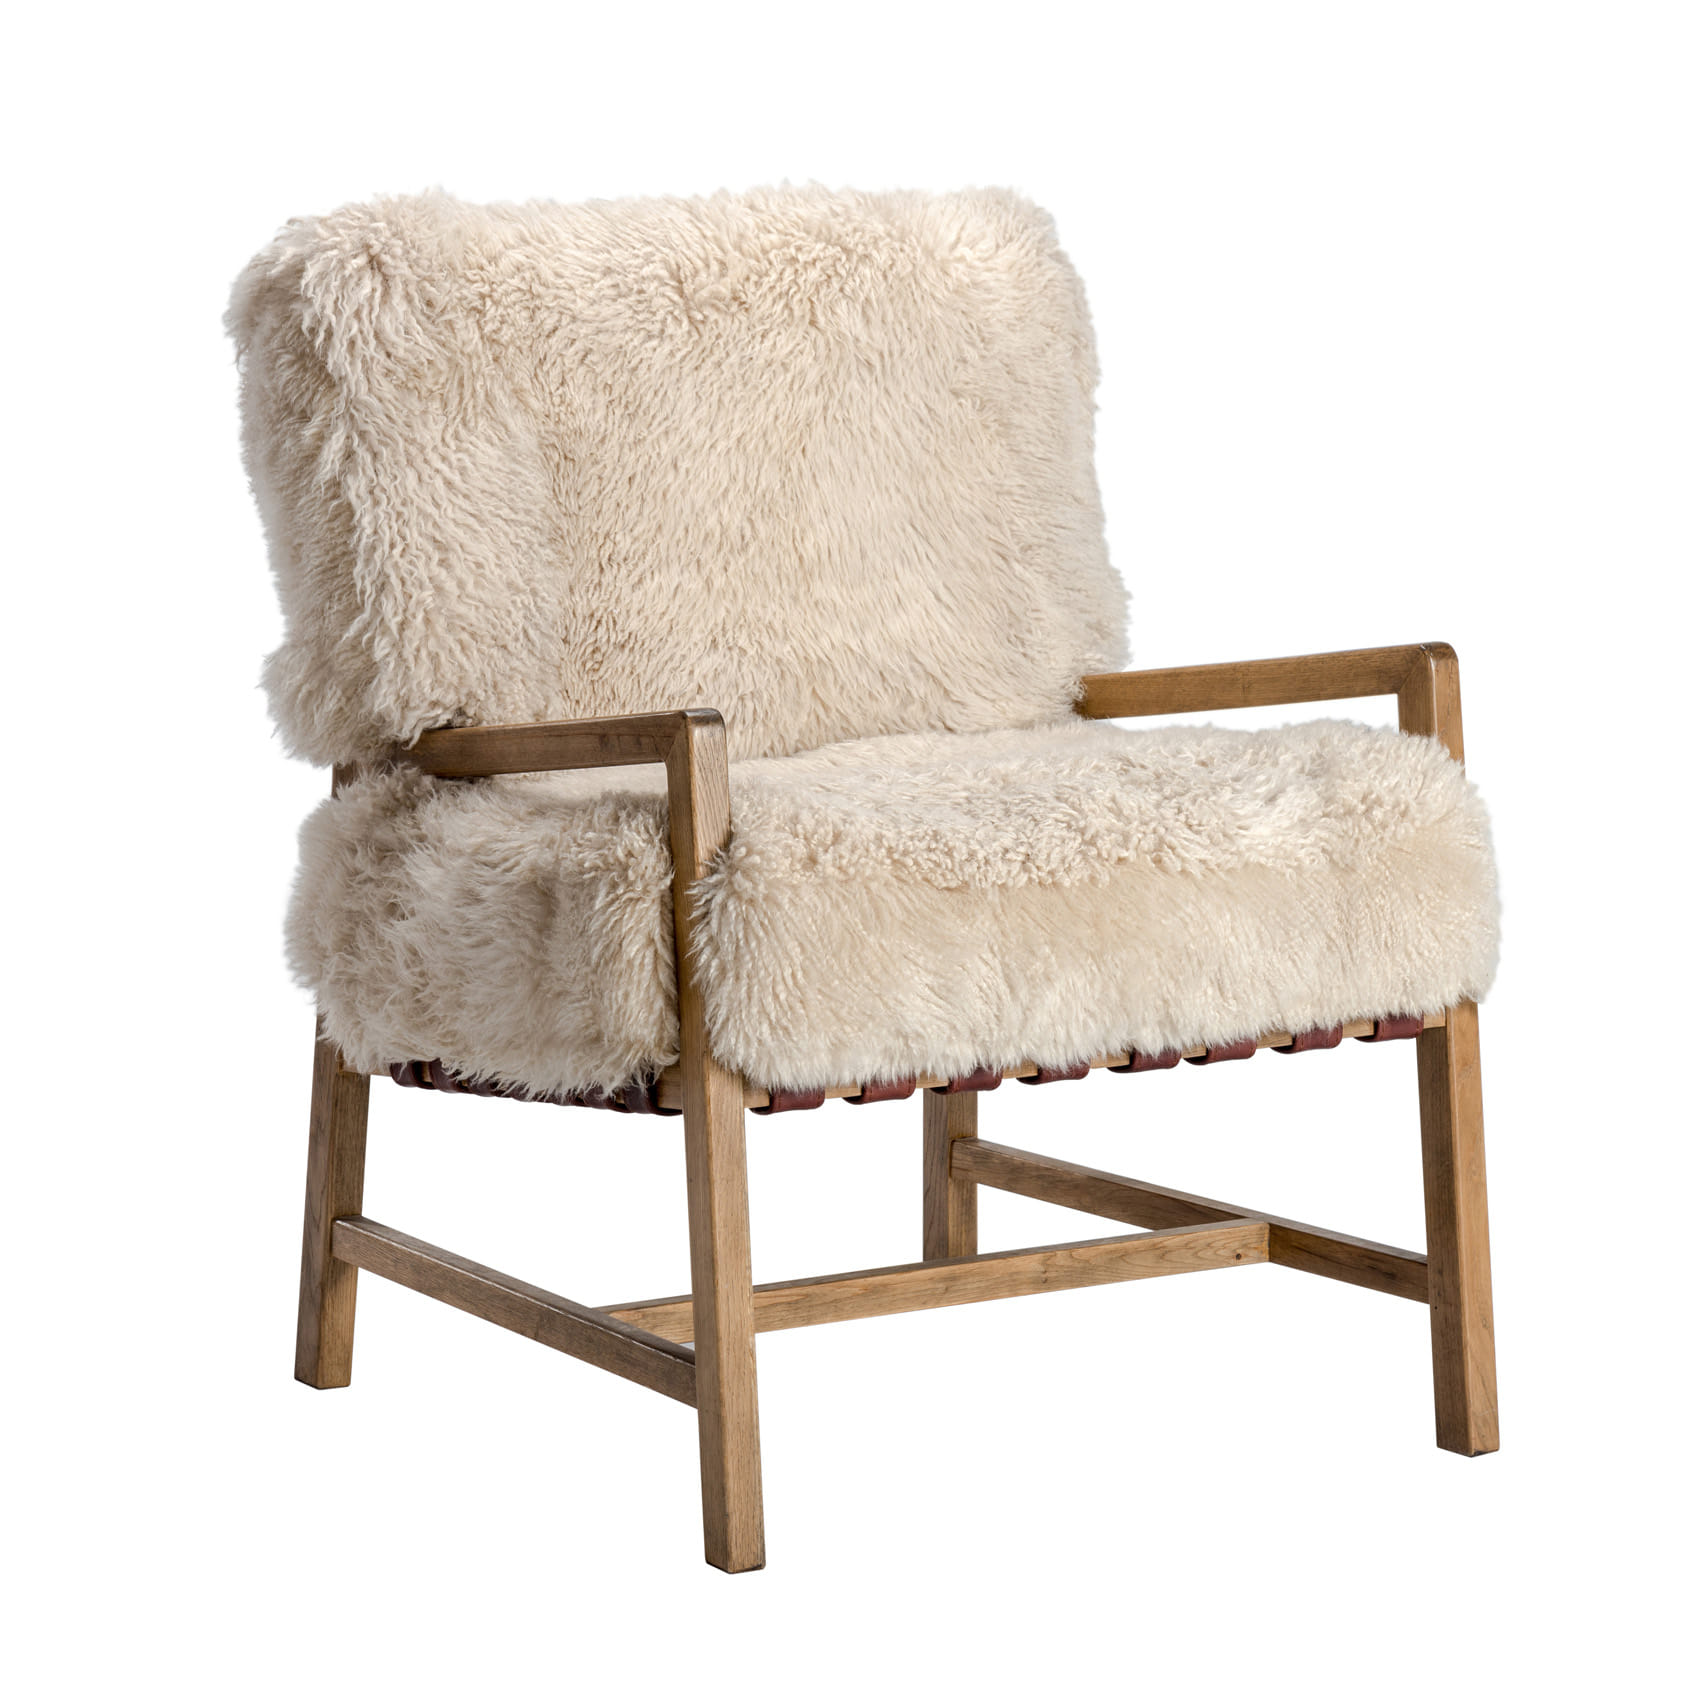 WILD CHAIR-YETI BEIGE